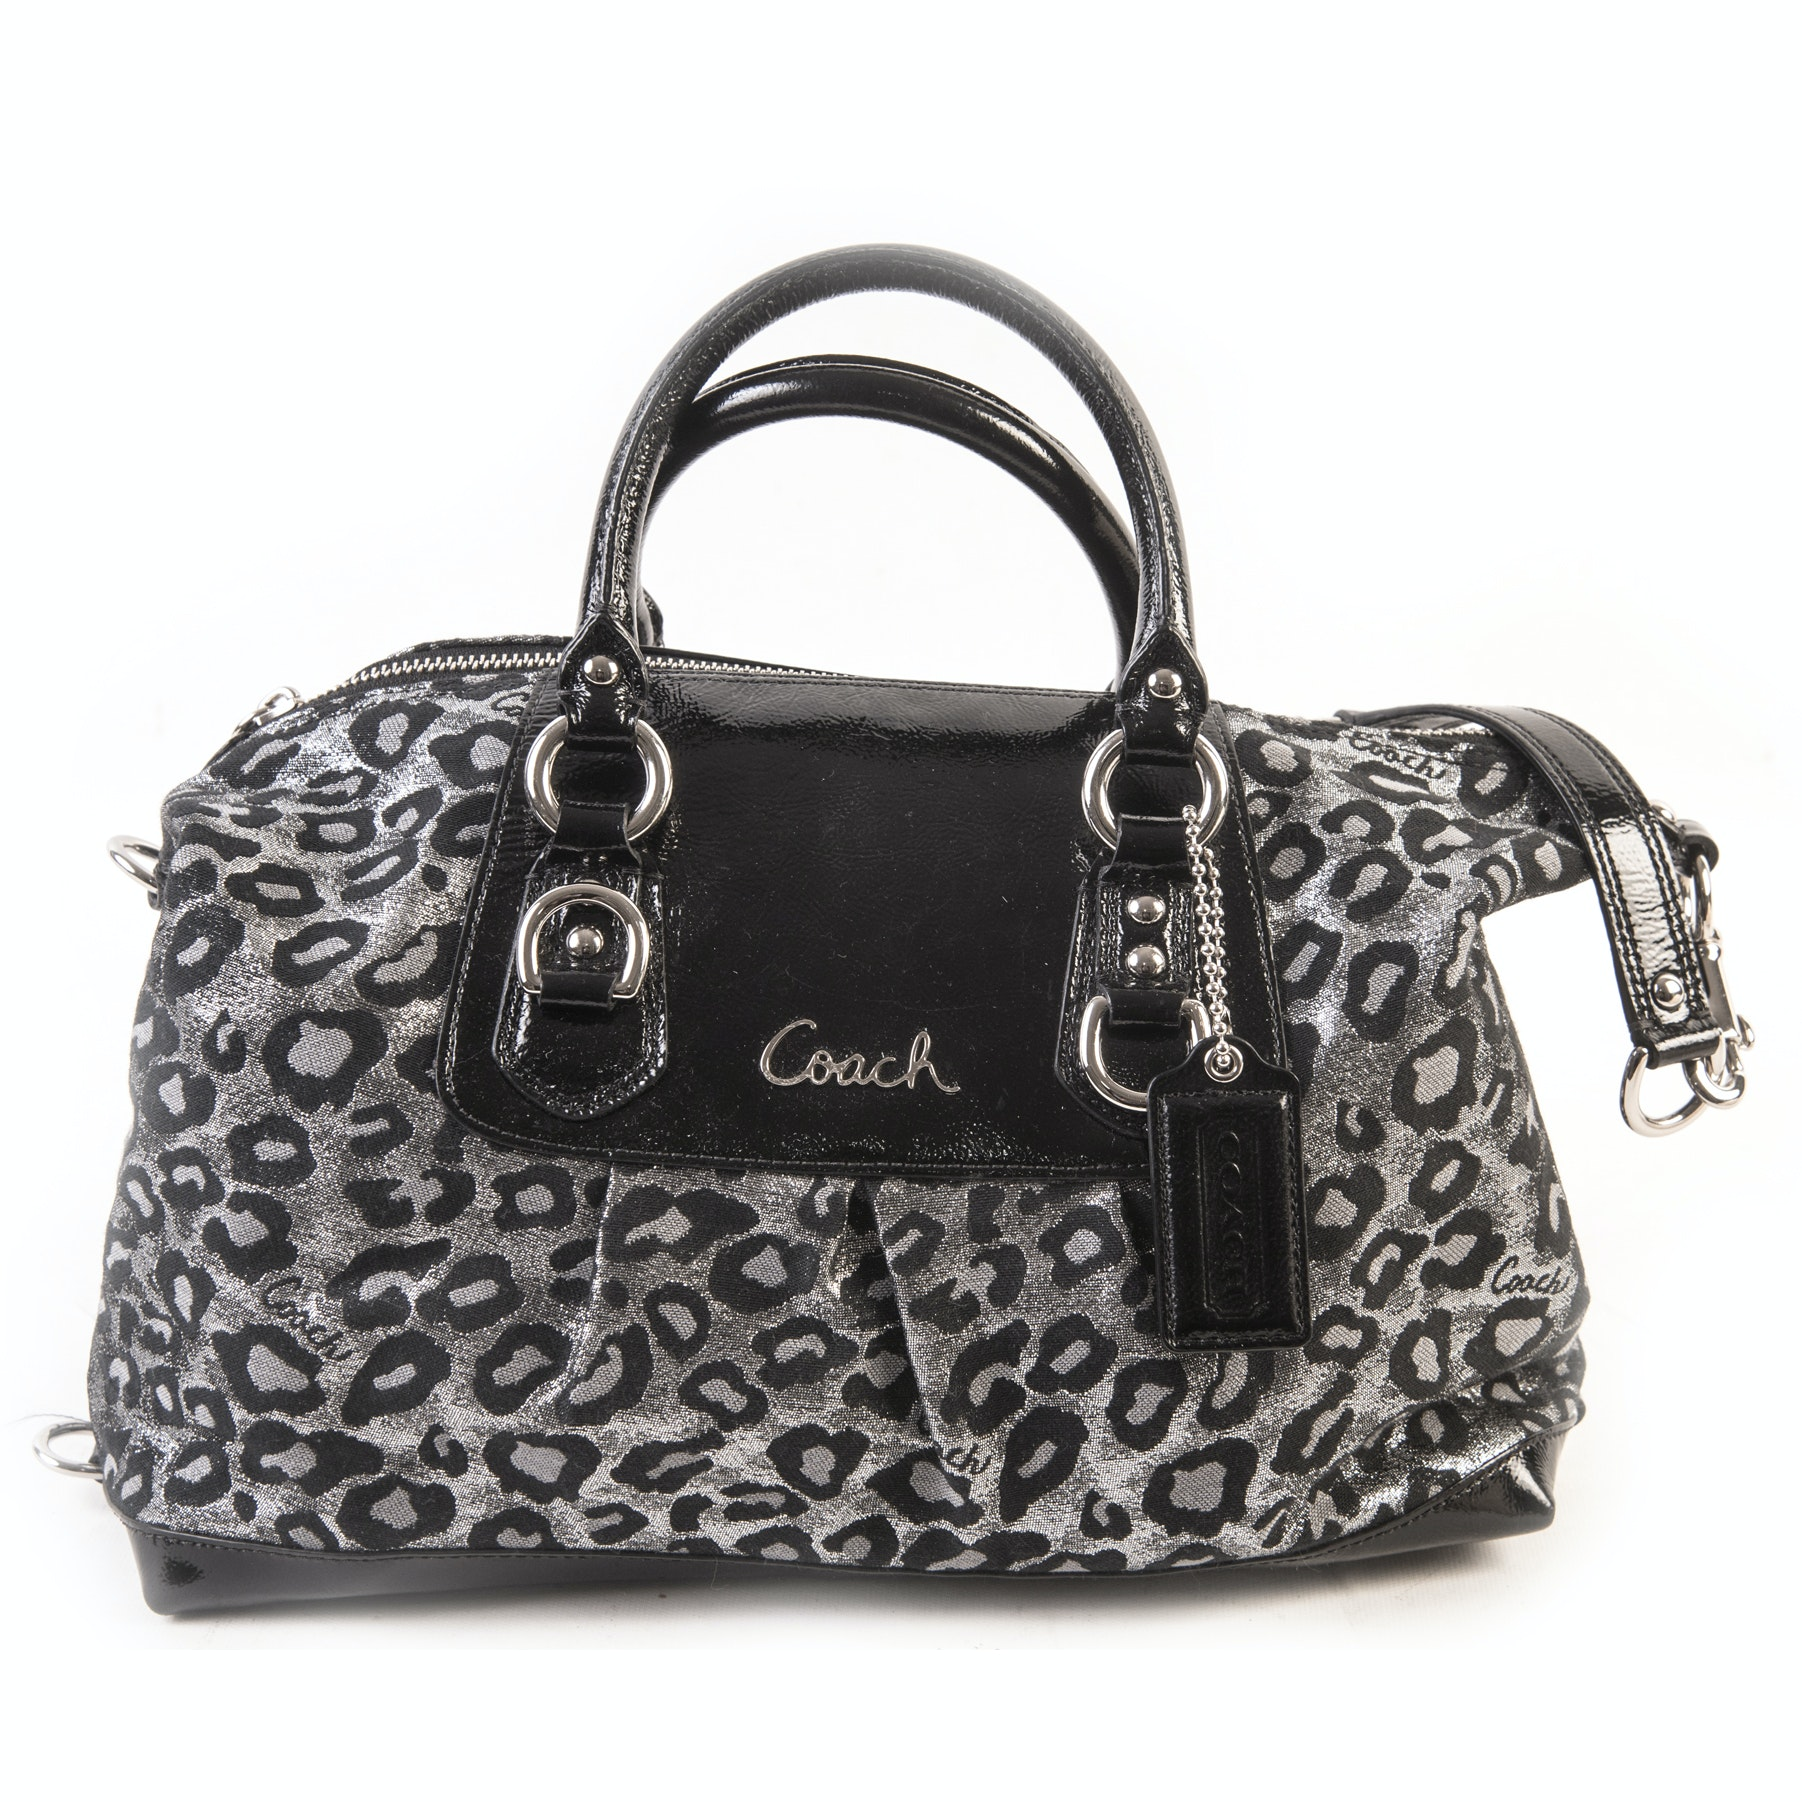 Coach Ashley Ocelot Leopard Print and Black Patent Leather Satchel